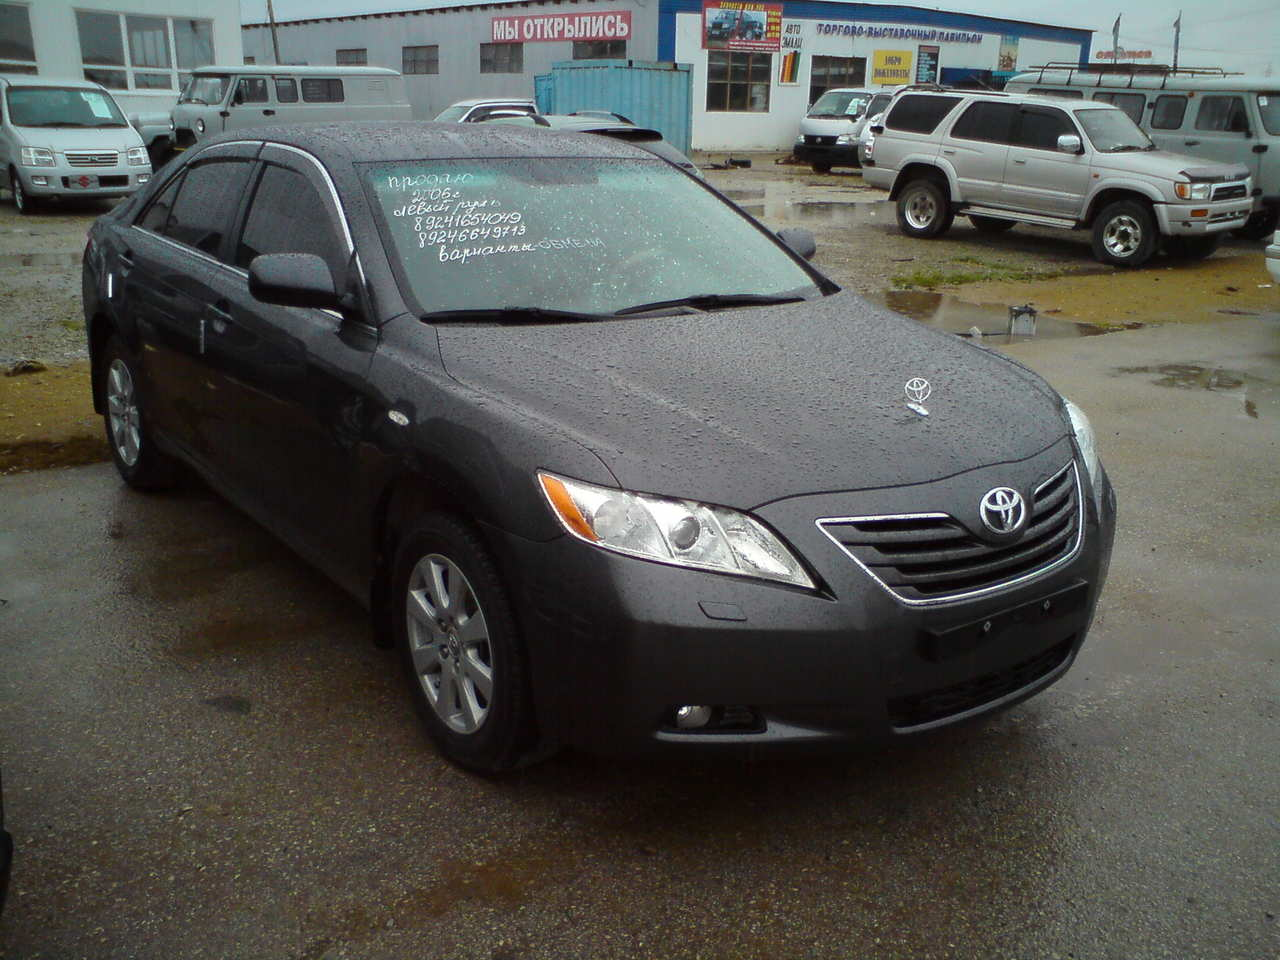 used 2006 toyota camry photos 2400cc gasoline ff. Black Bedroom Furniture Sets. Home Design Ideas